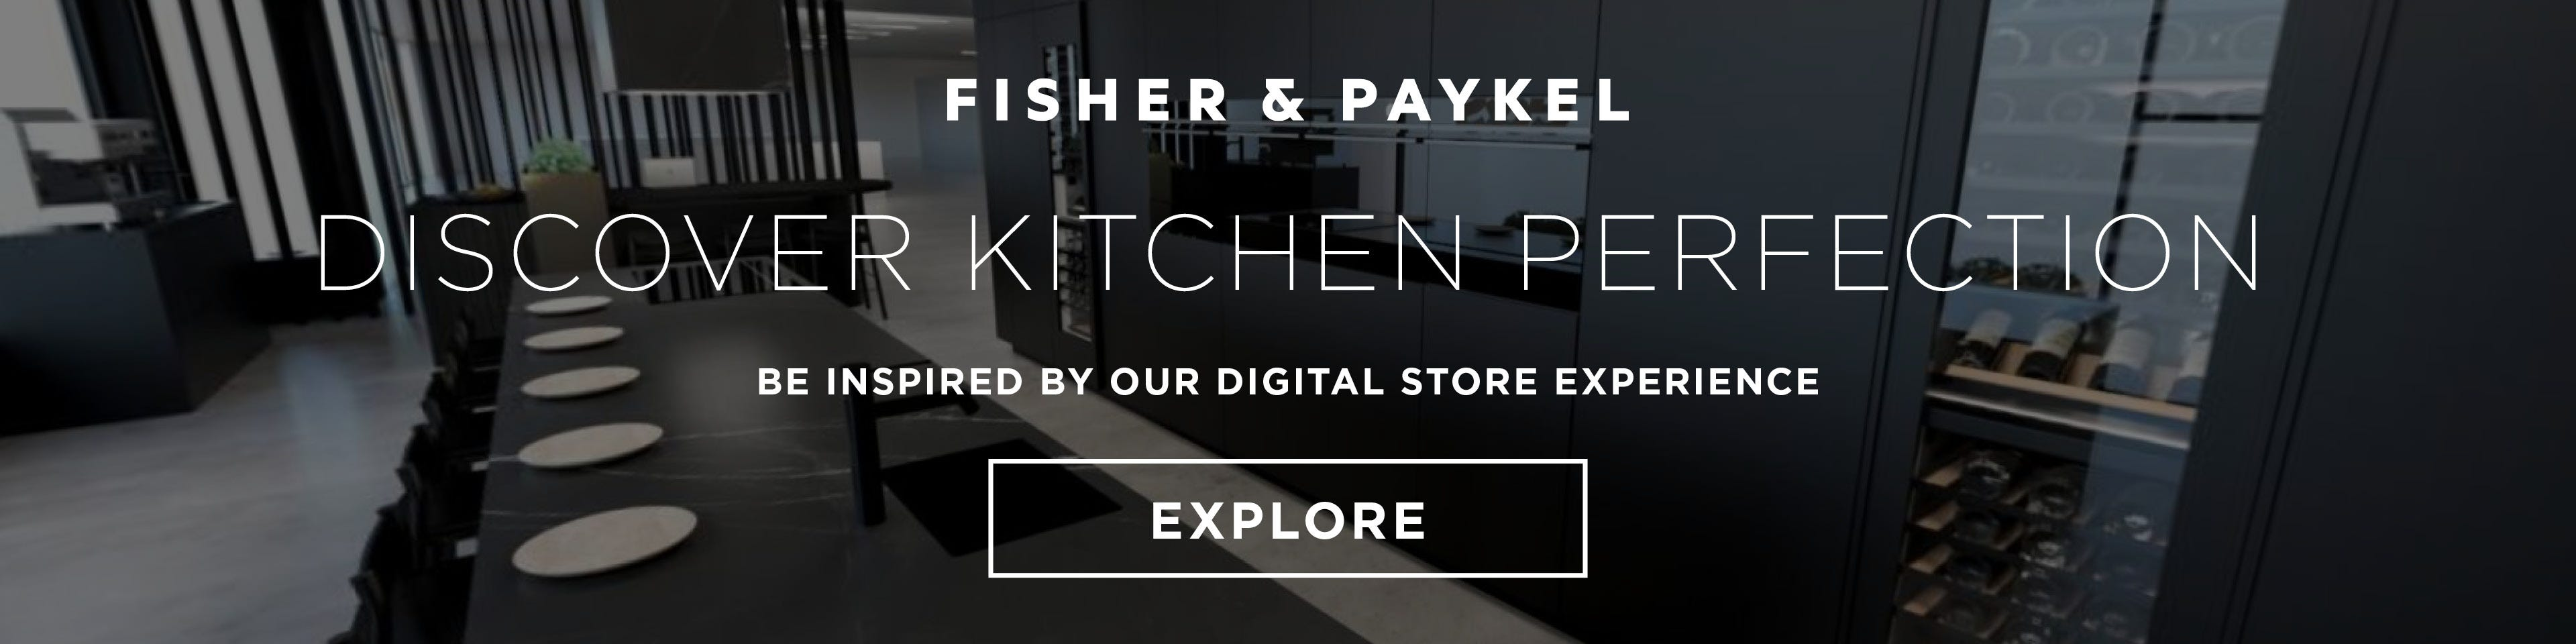 Discover kitchen perfection in our inspiring Fisher and Paykel digital store experience